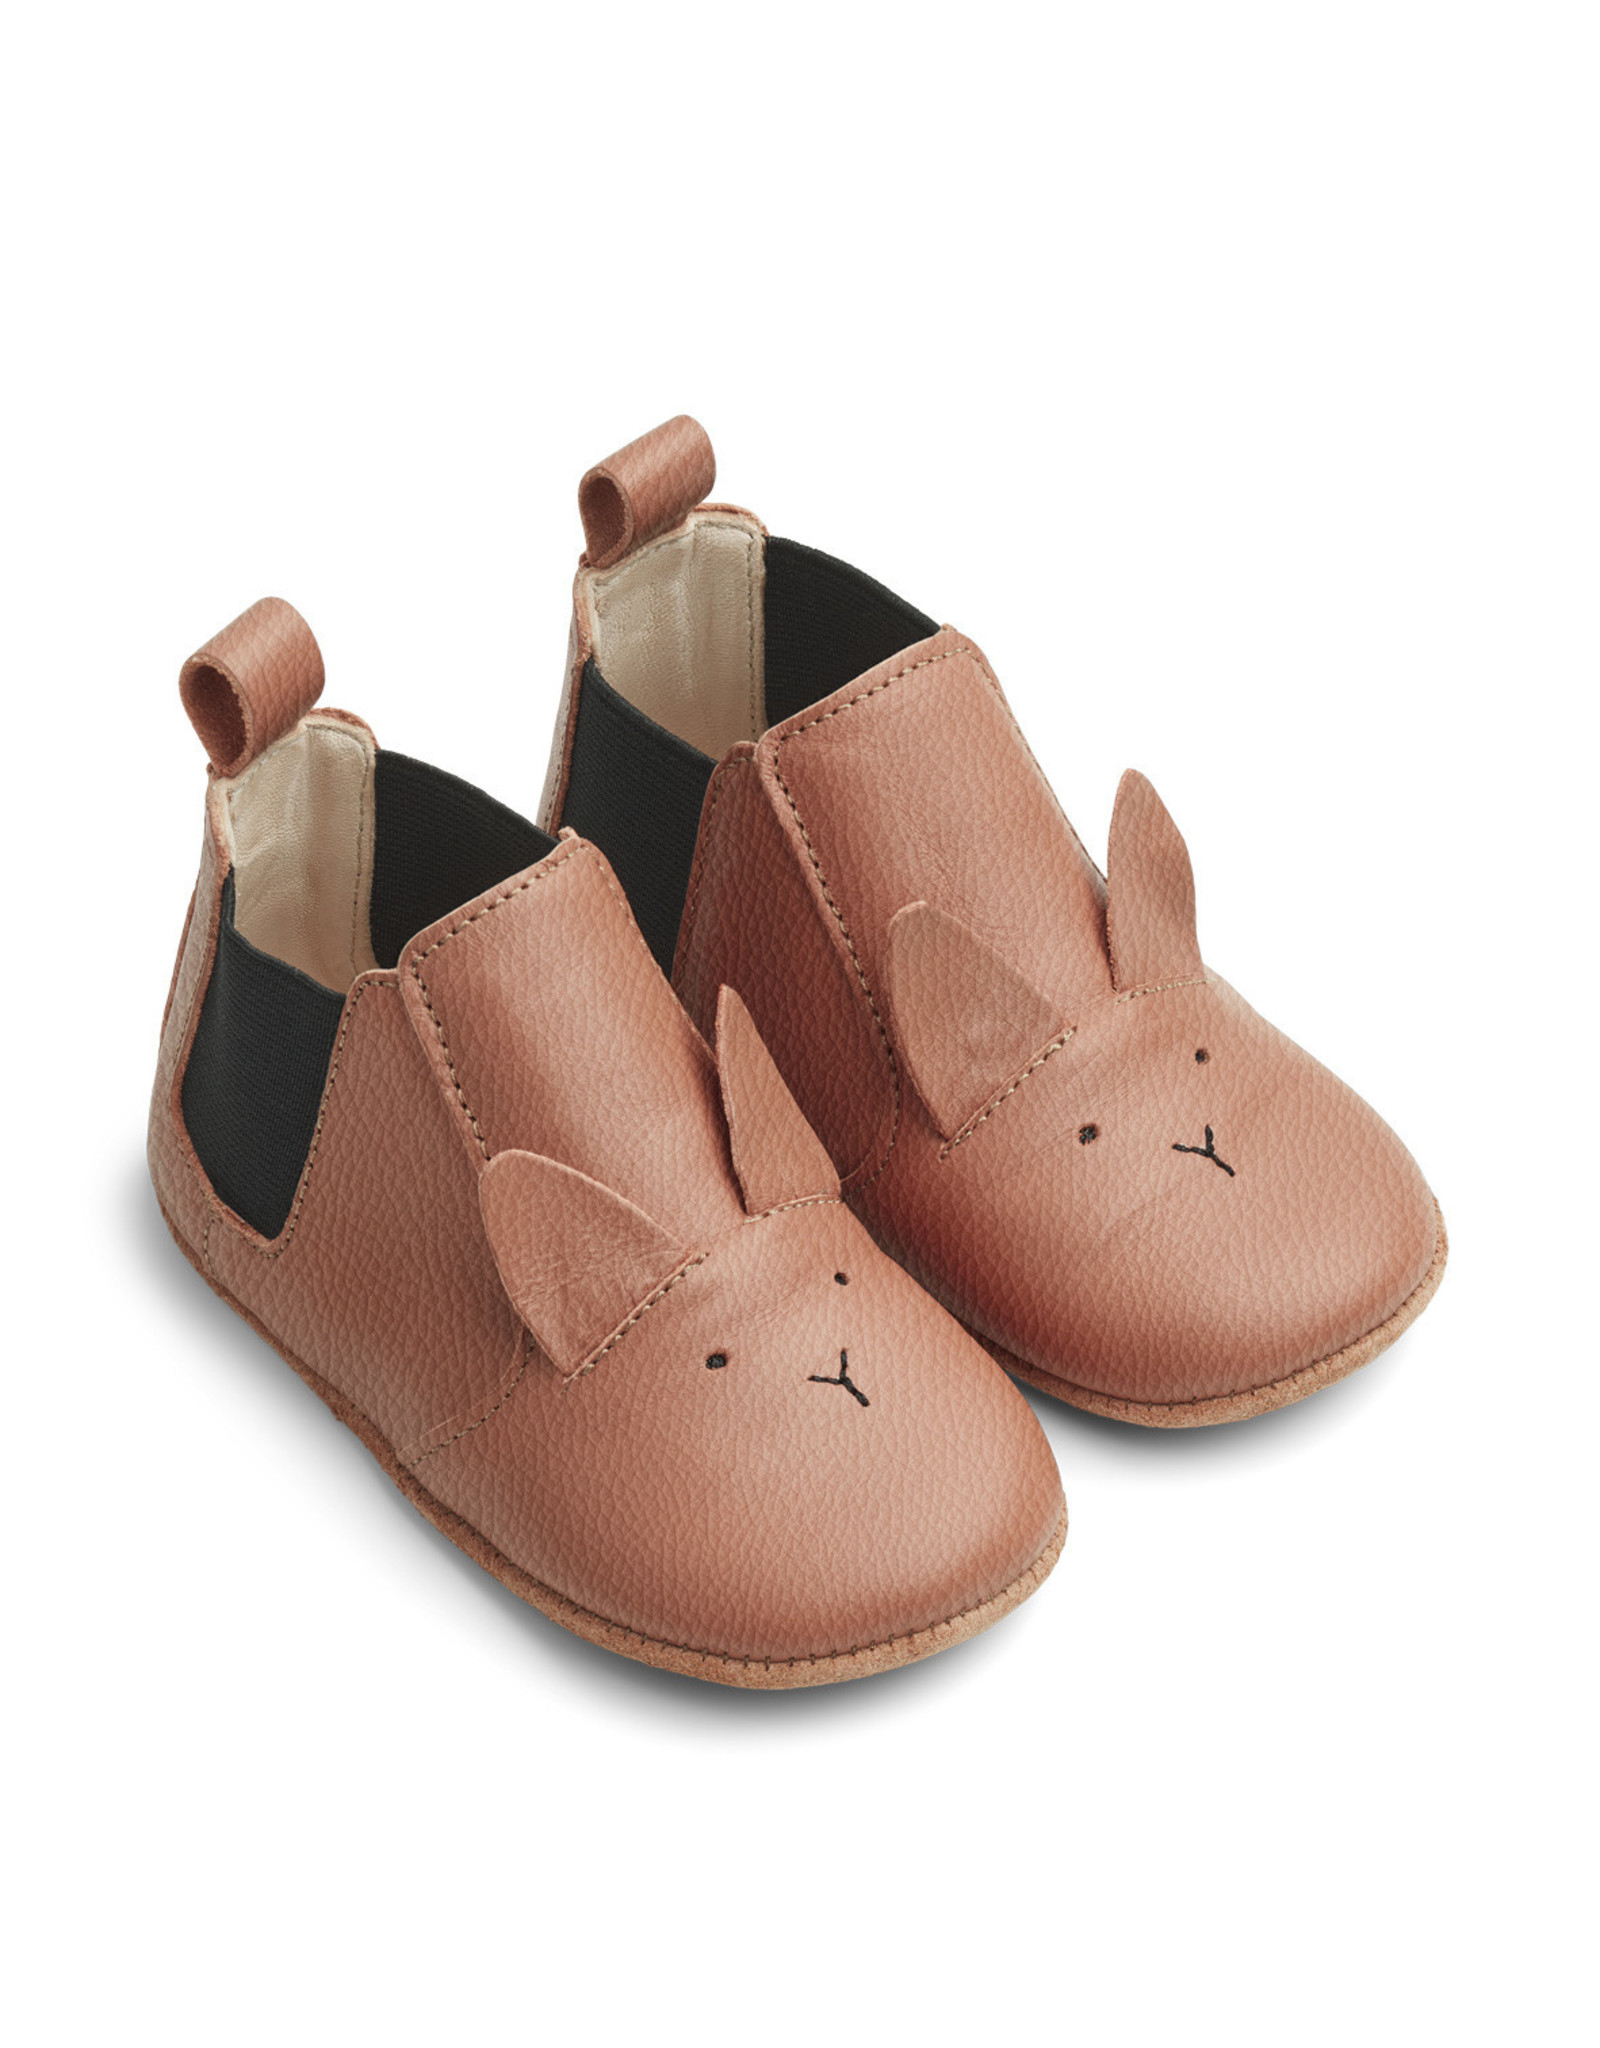 Liewood Liewood Edith leather slippers rabbit tuscany rose